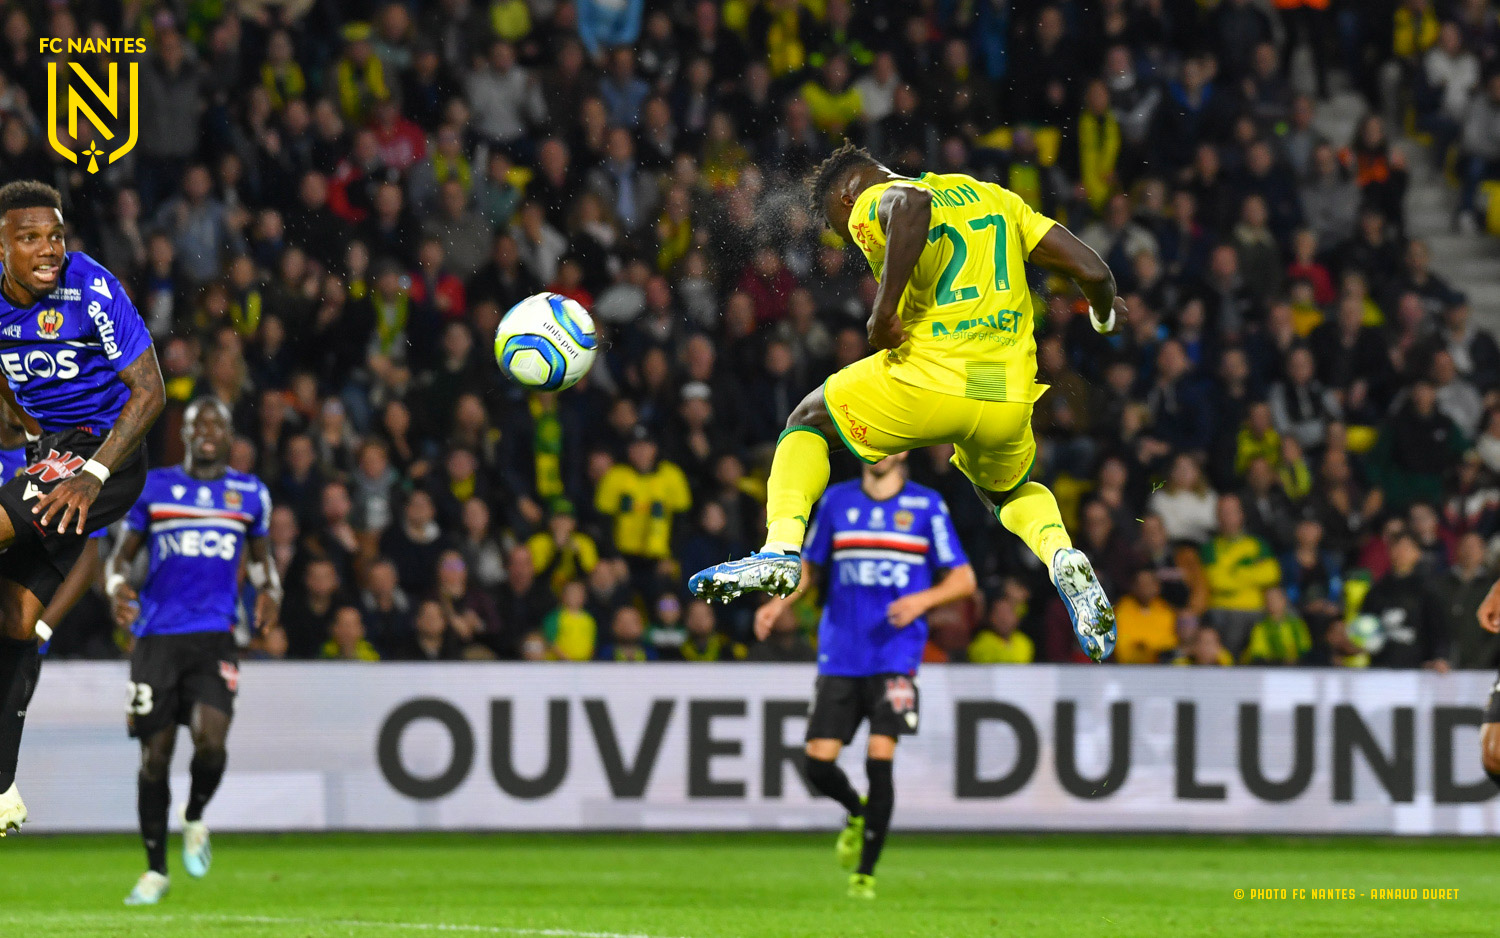 Eagles Roundup: Simon Nets Winner For Nantes, Collins Misses Penalty In Paderborn 's Home Loss To Mainz